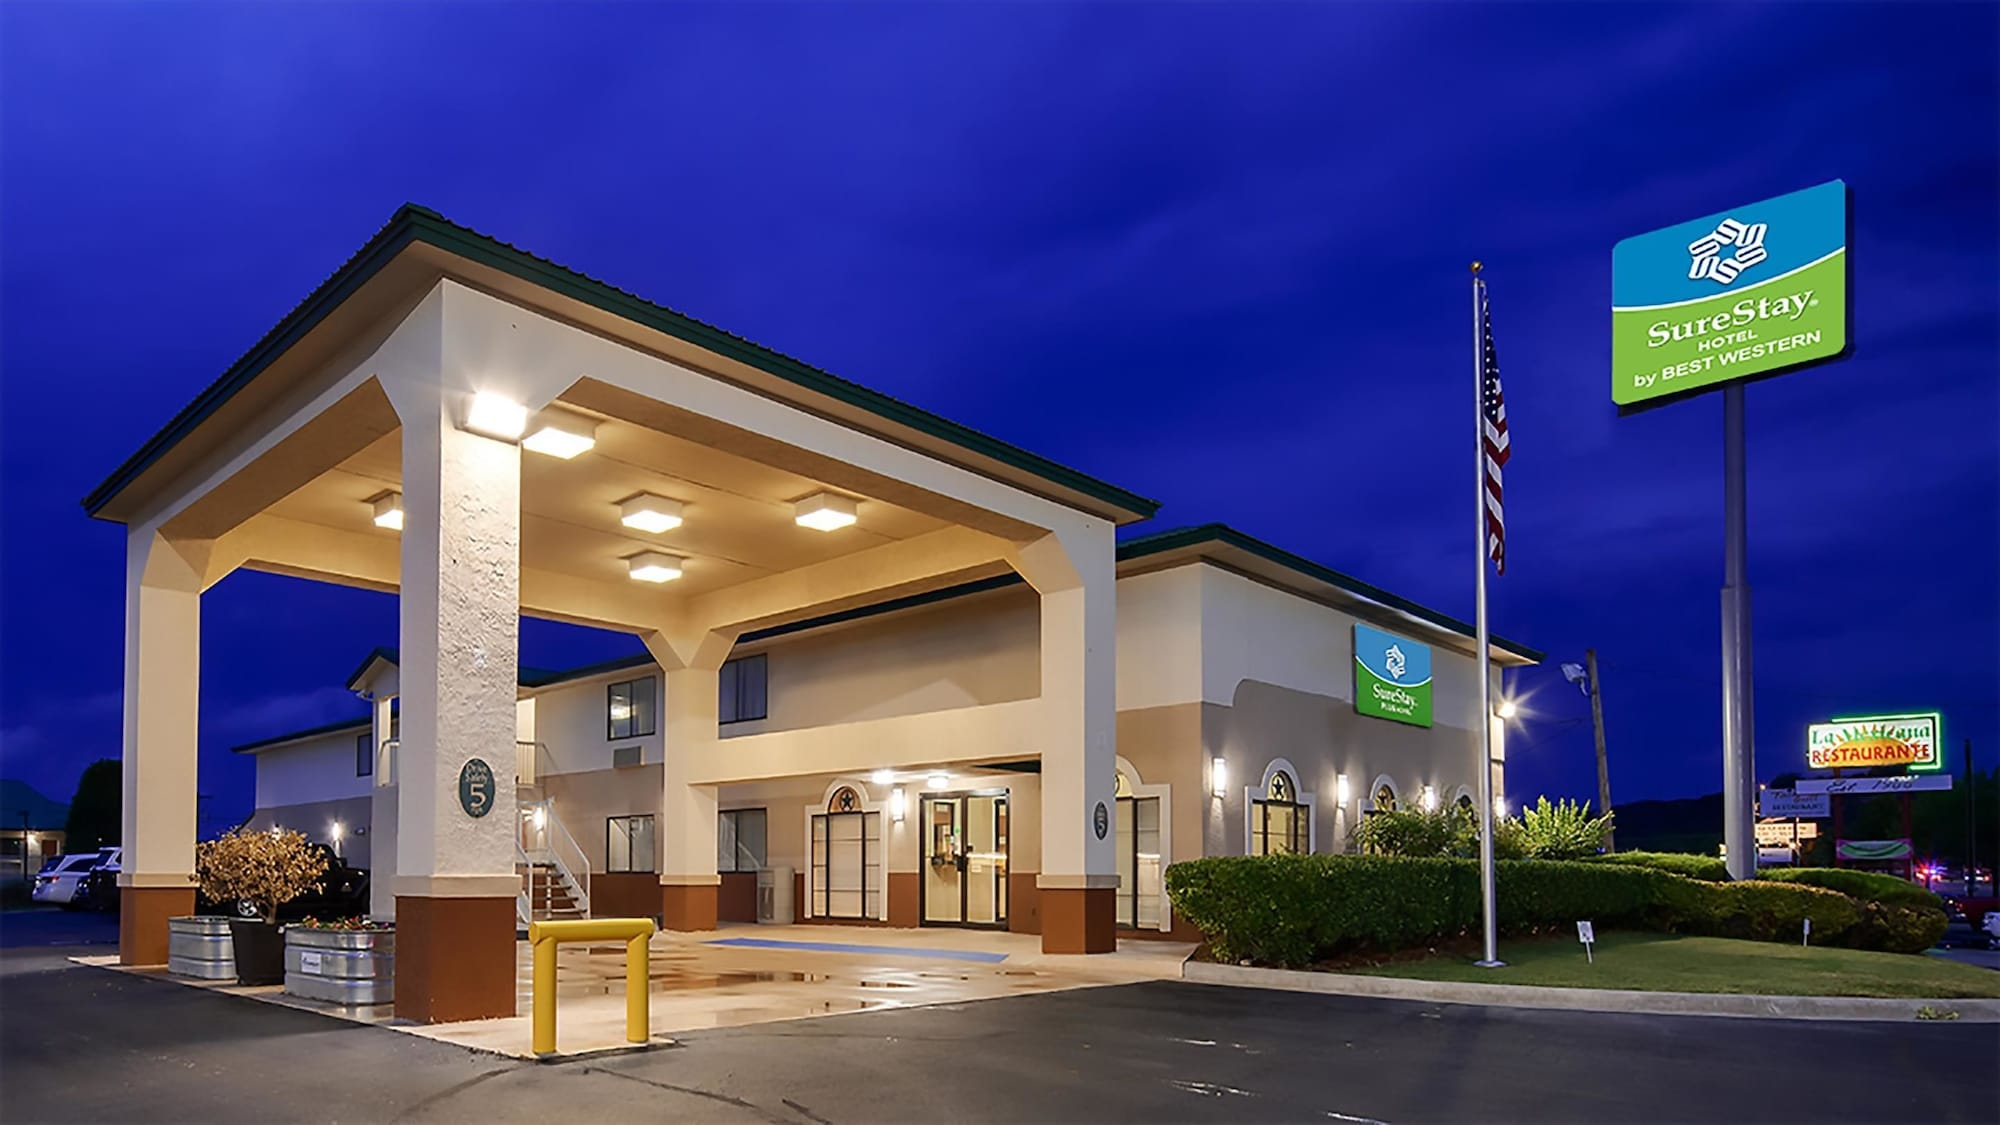 SureStay Hotel by Best Western Sonora, Sutton